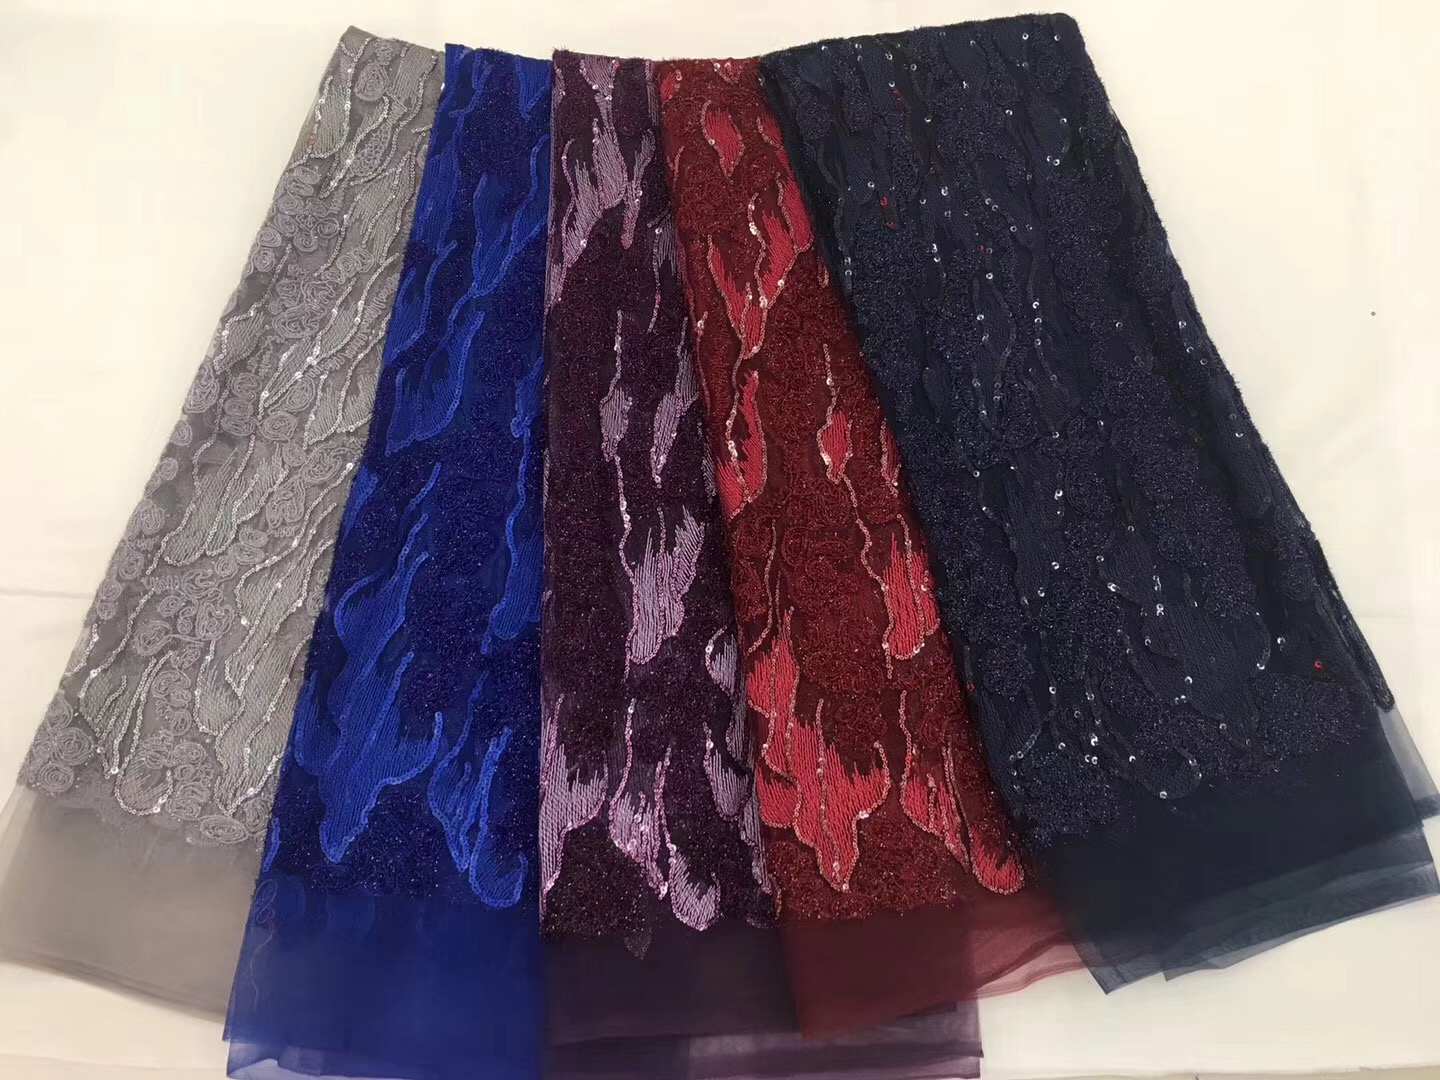 BEAUTIFICA african lace fabric with sequins 2018 sequin fabric tulle sequins lace fabric for evening dresses 5yards/lot FJN12BEAUTIFICA african lace fabric with sequins 2018 sequin fabric tulle sequins lace fabric for evening dresses 5yards/lot FJN12